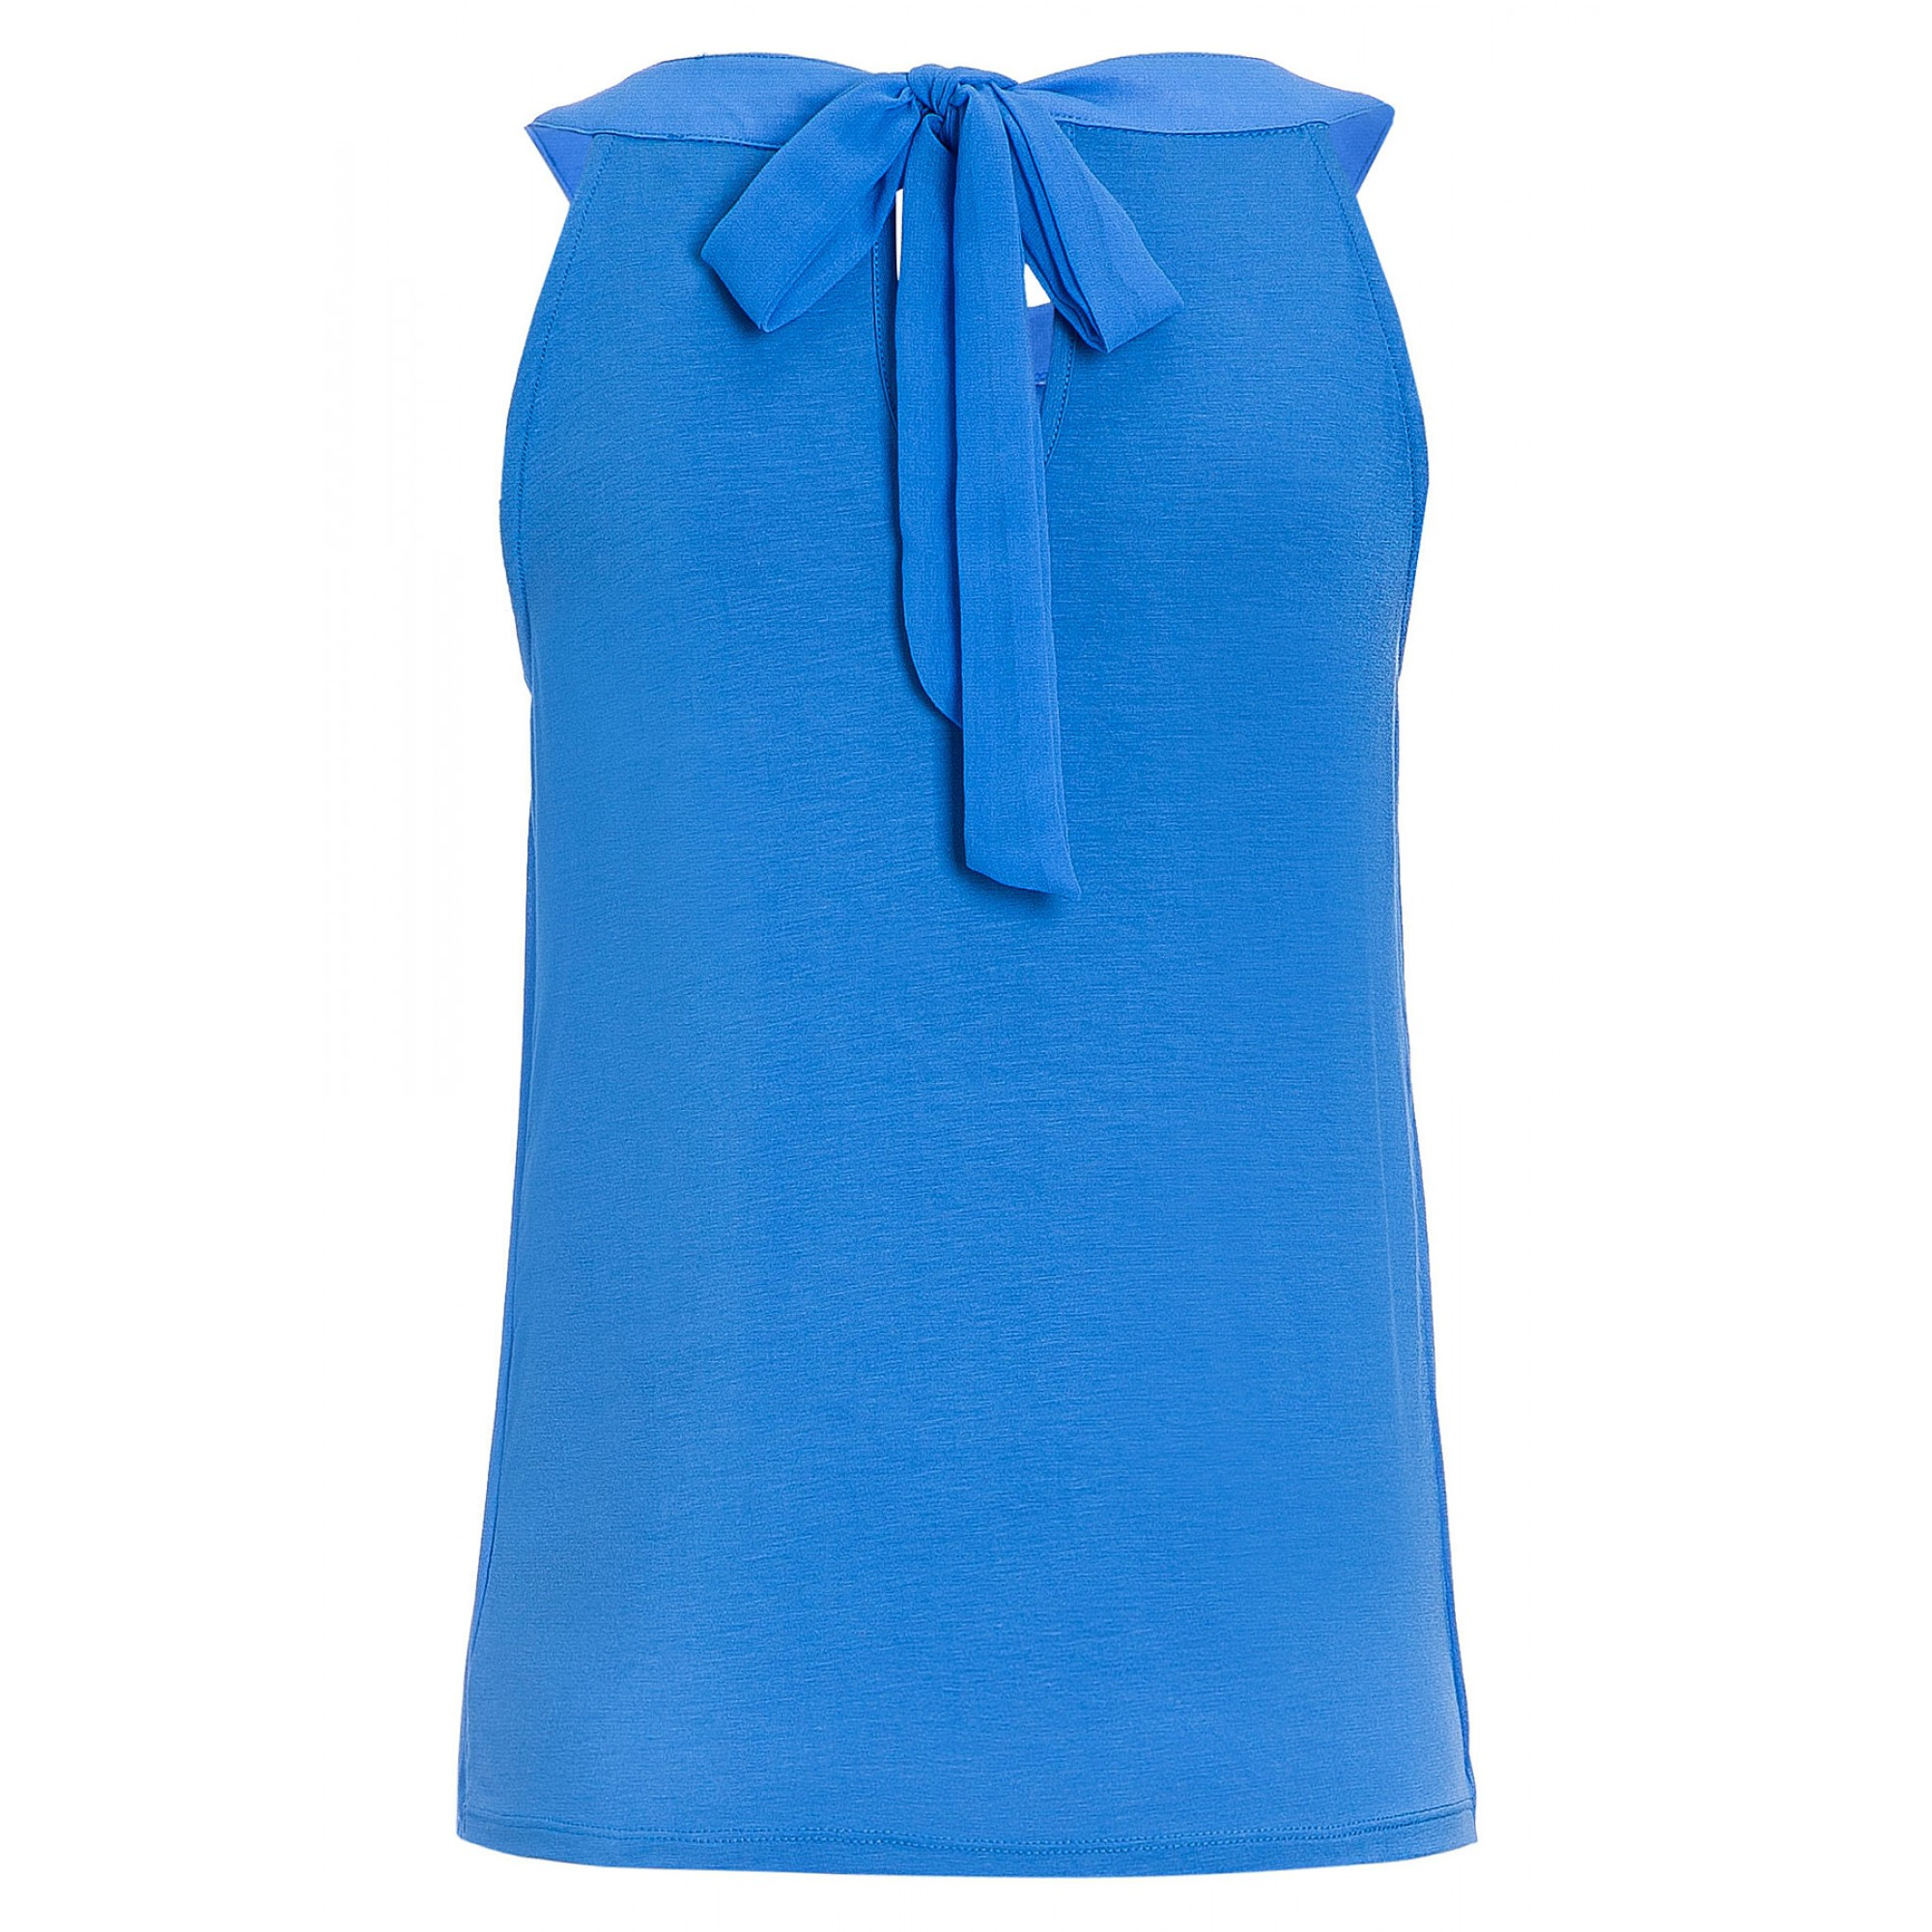 Top mit Chiffonfront, pacific blue 71050022-0345 2